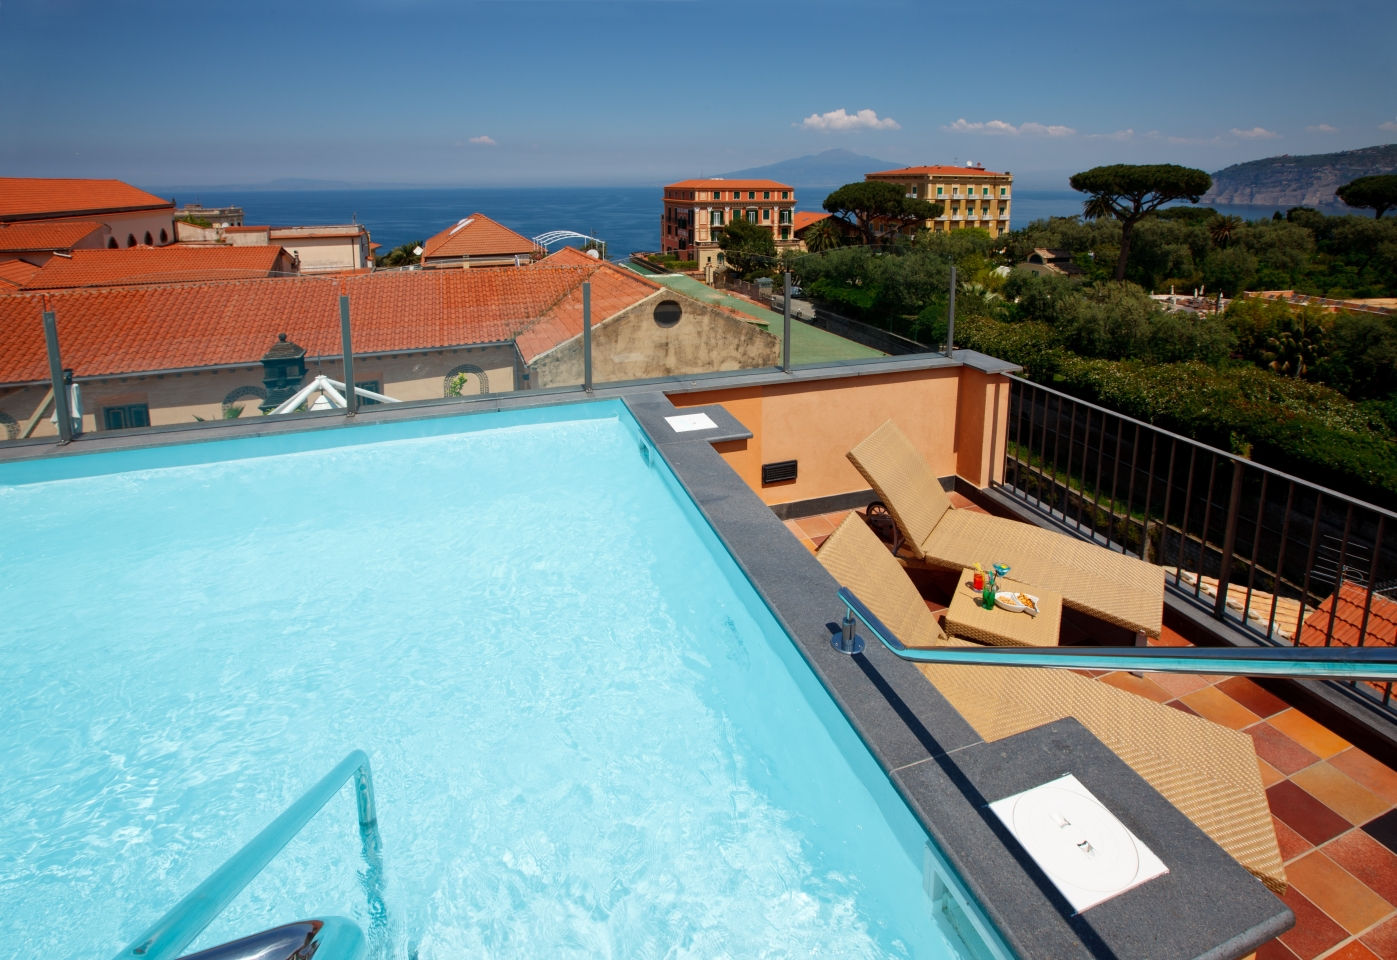 Sorrento hotel with swimming pool 4 star hotel with pool - 4 star hotels in lisbon with swimming pool ...